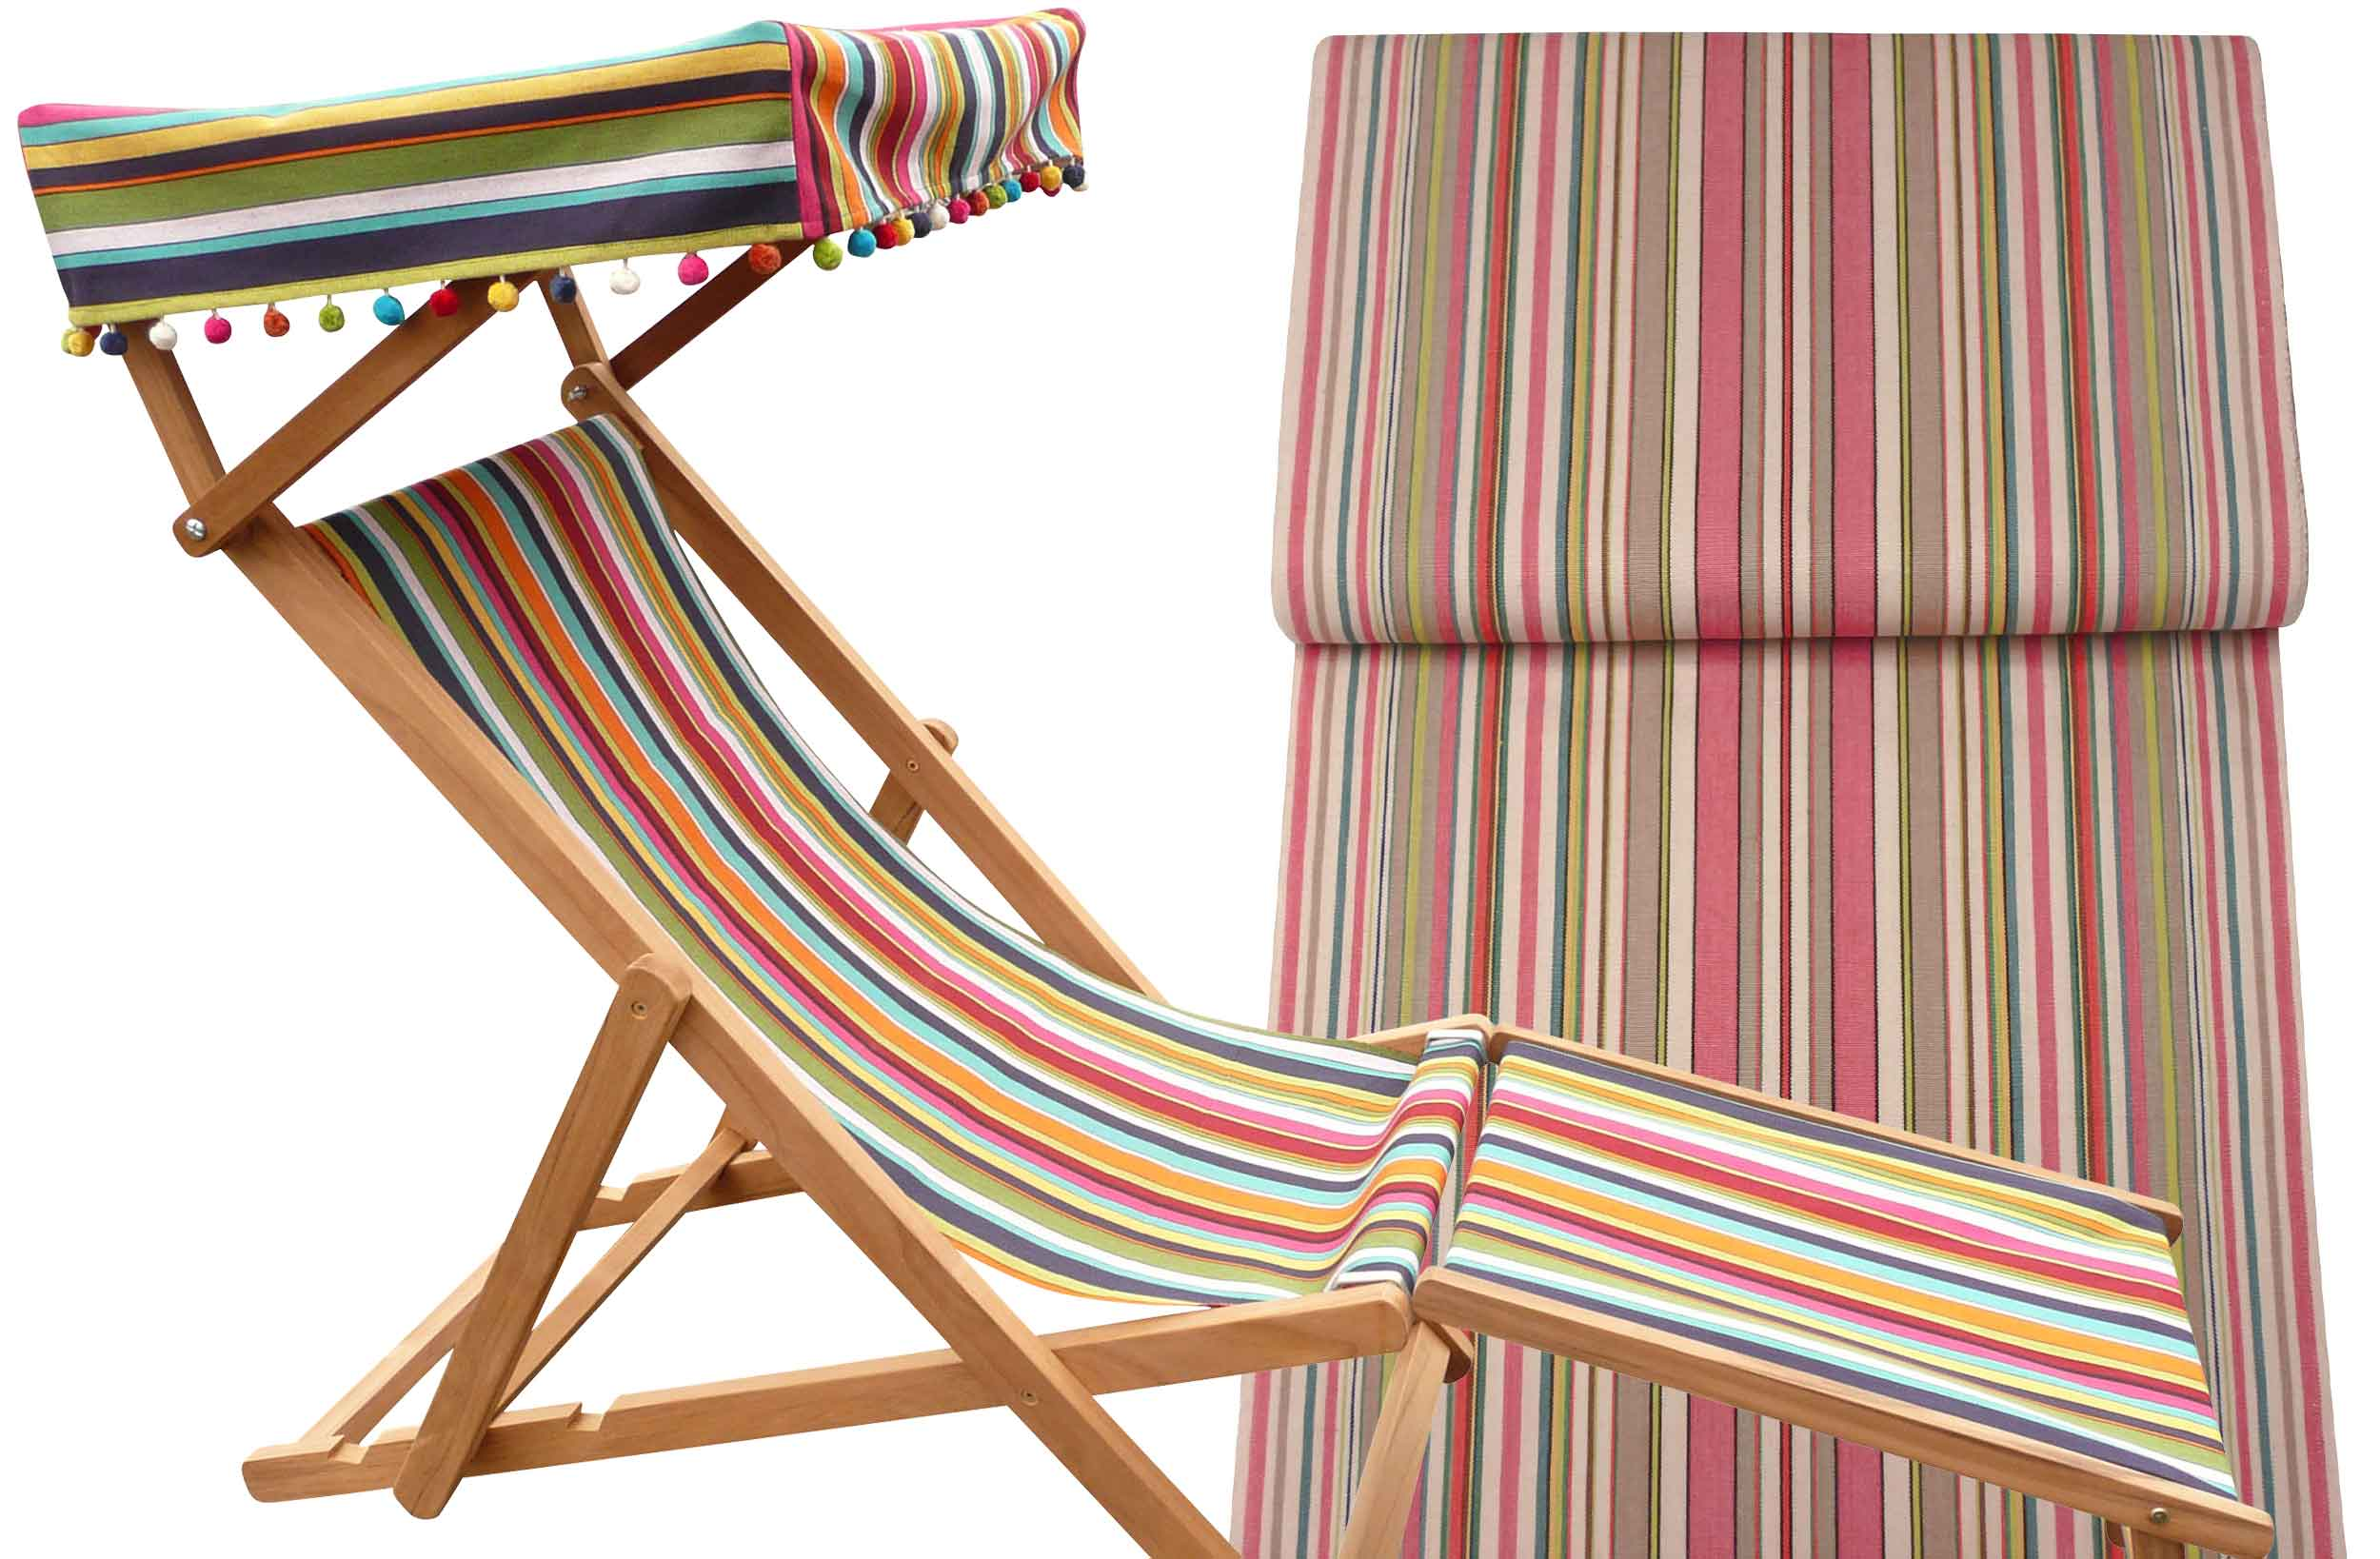 Edwardian Deckchairs with Canopy and Footstool coral, sand, cream